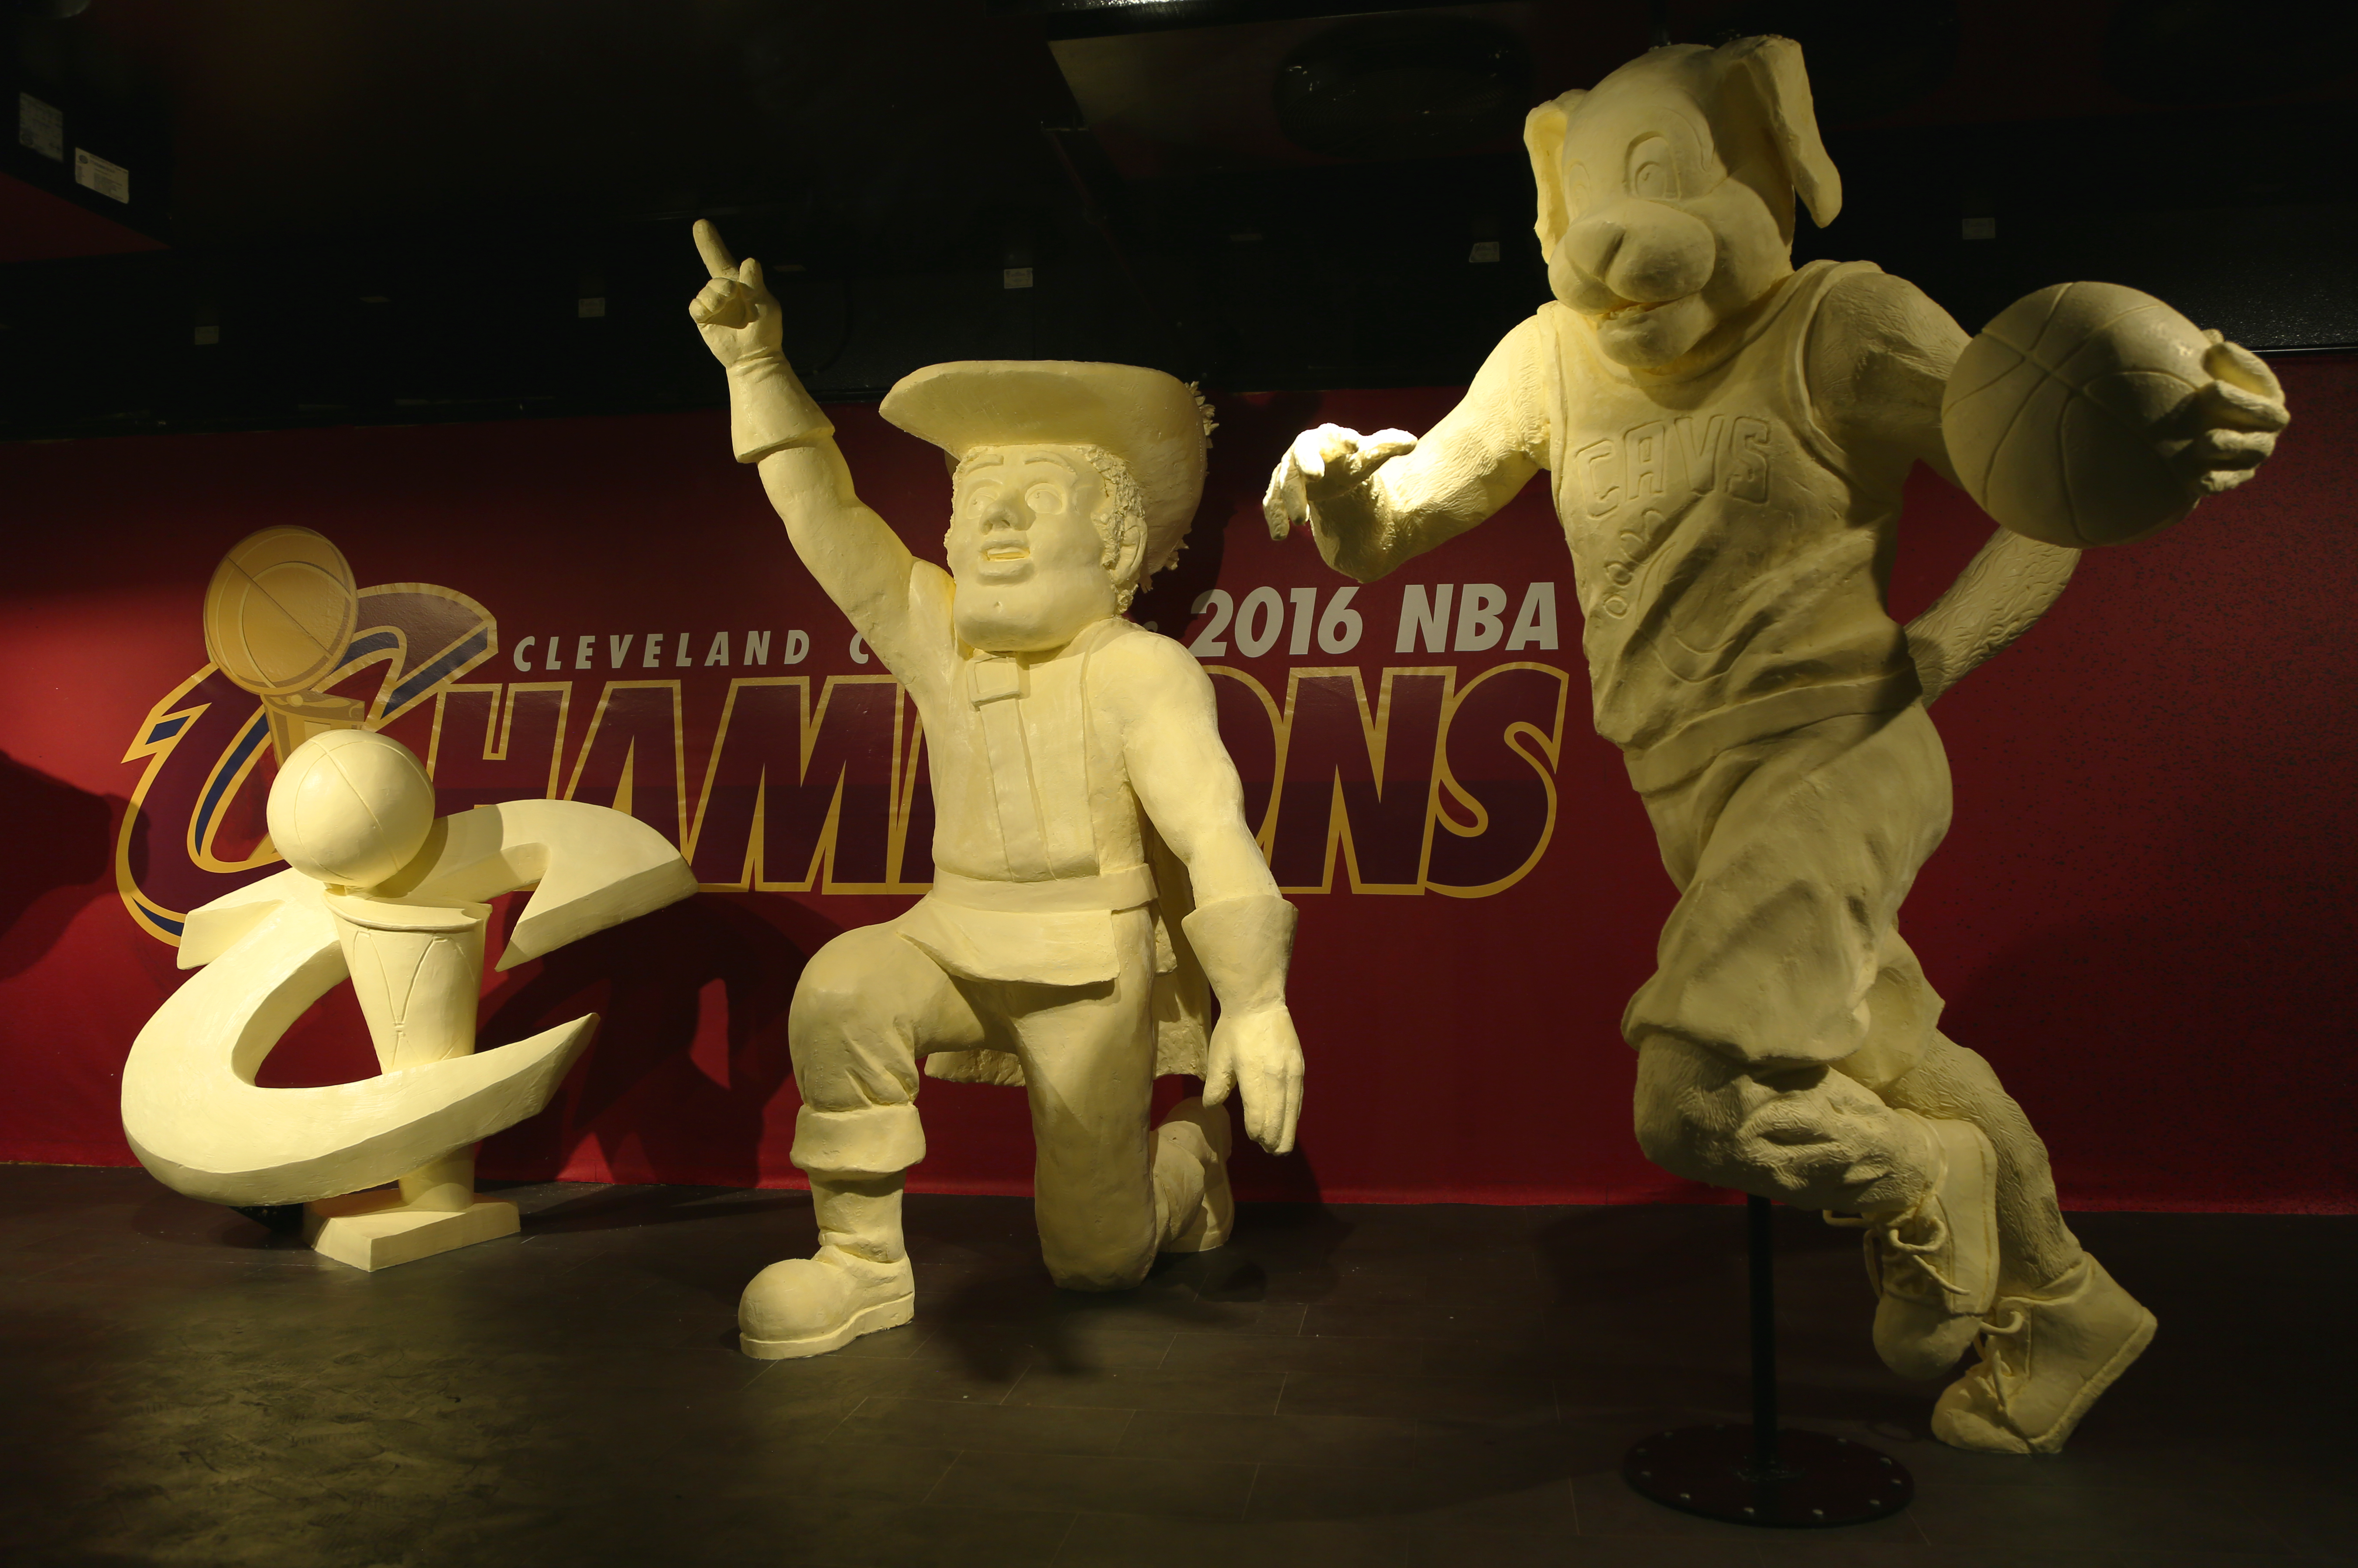 At this year`s Ohio State Fair, the American Dairy Association Mideast pays tribute to the 2016 Cleveland Cavaliers. In June, the team rallied from a 3-1 deficit to win the NBA championship.